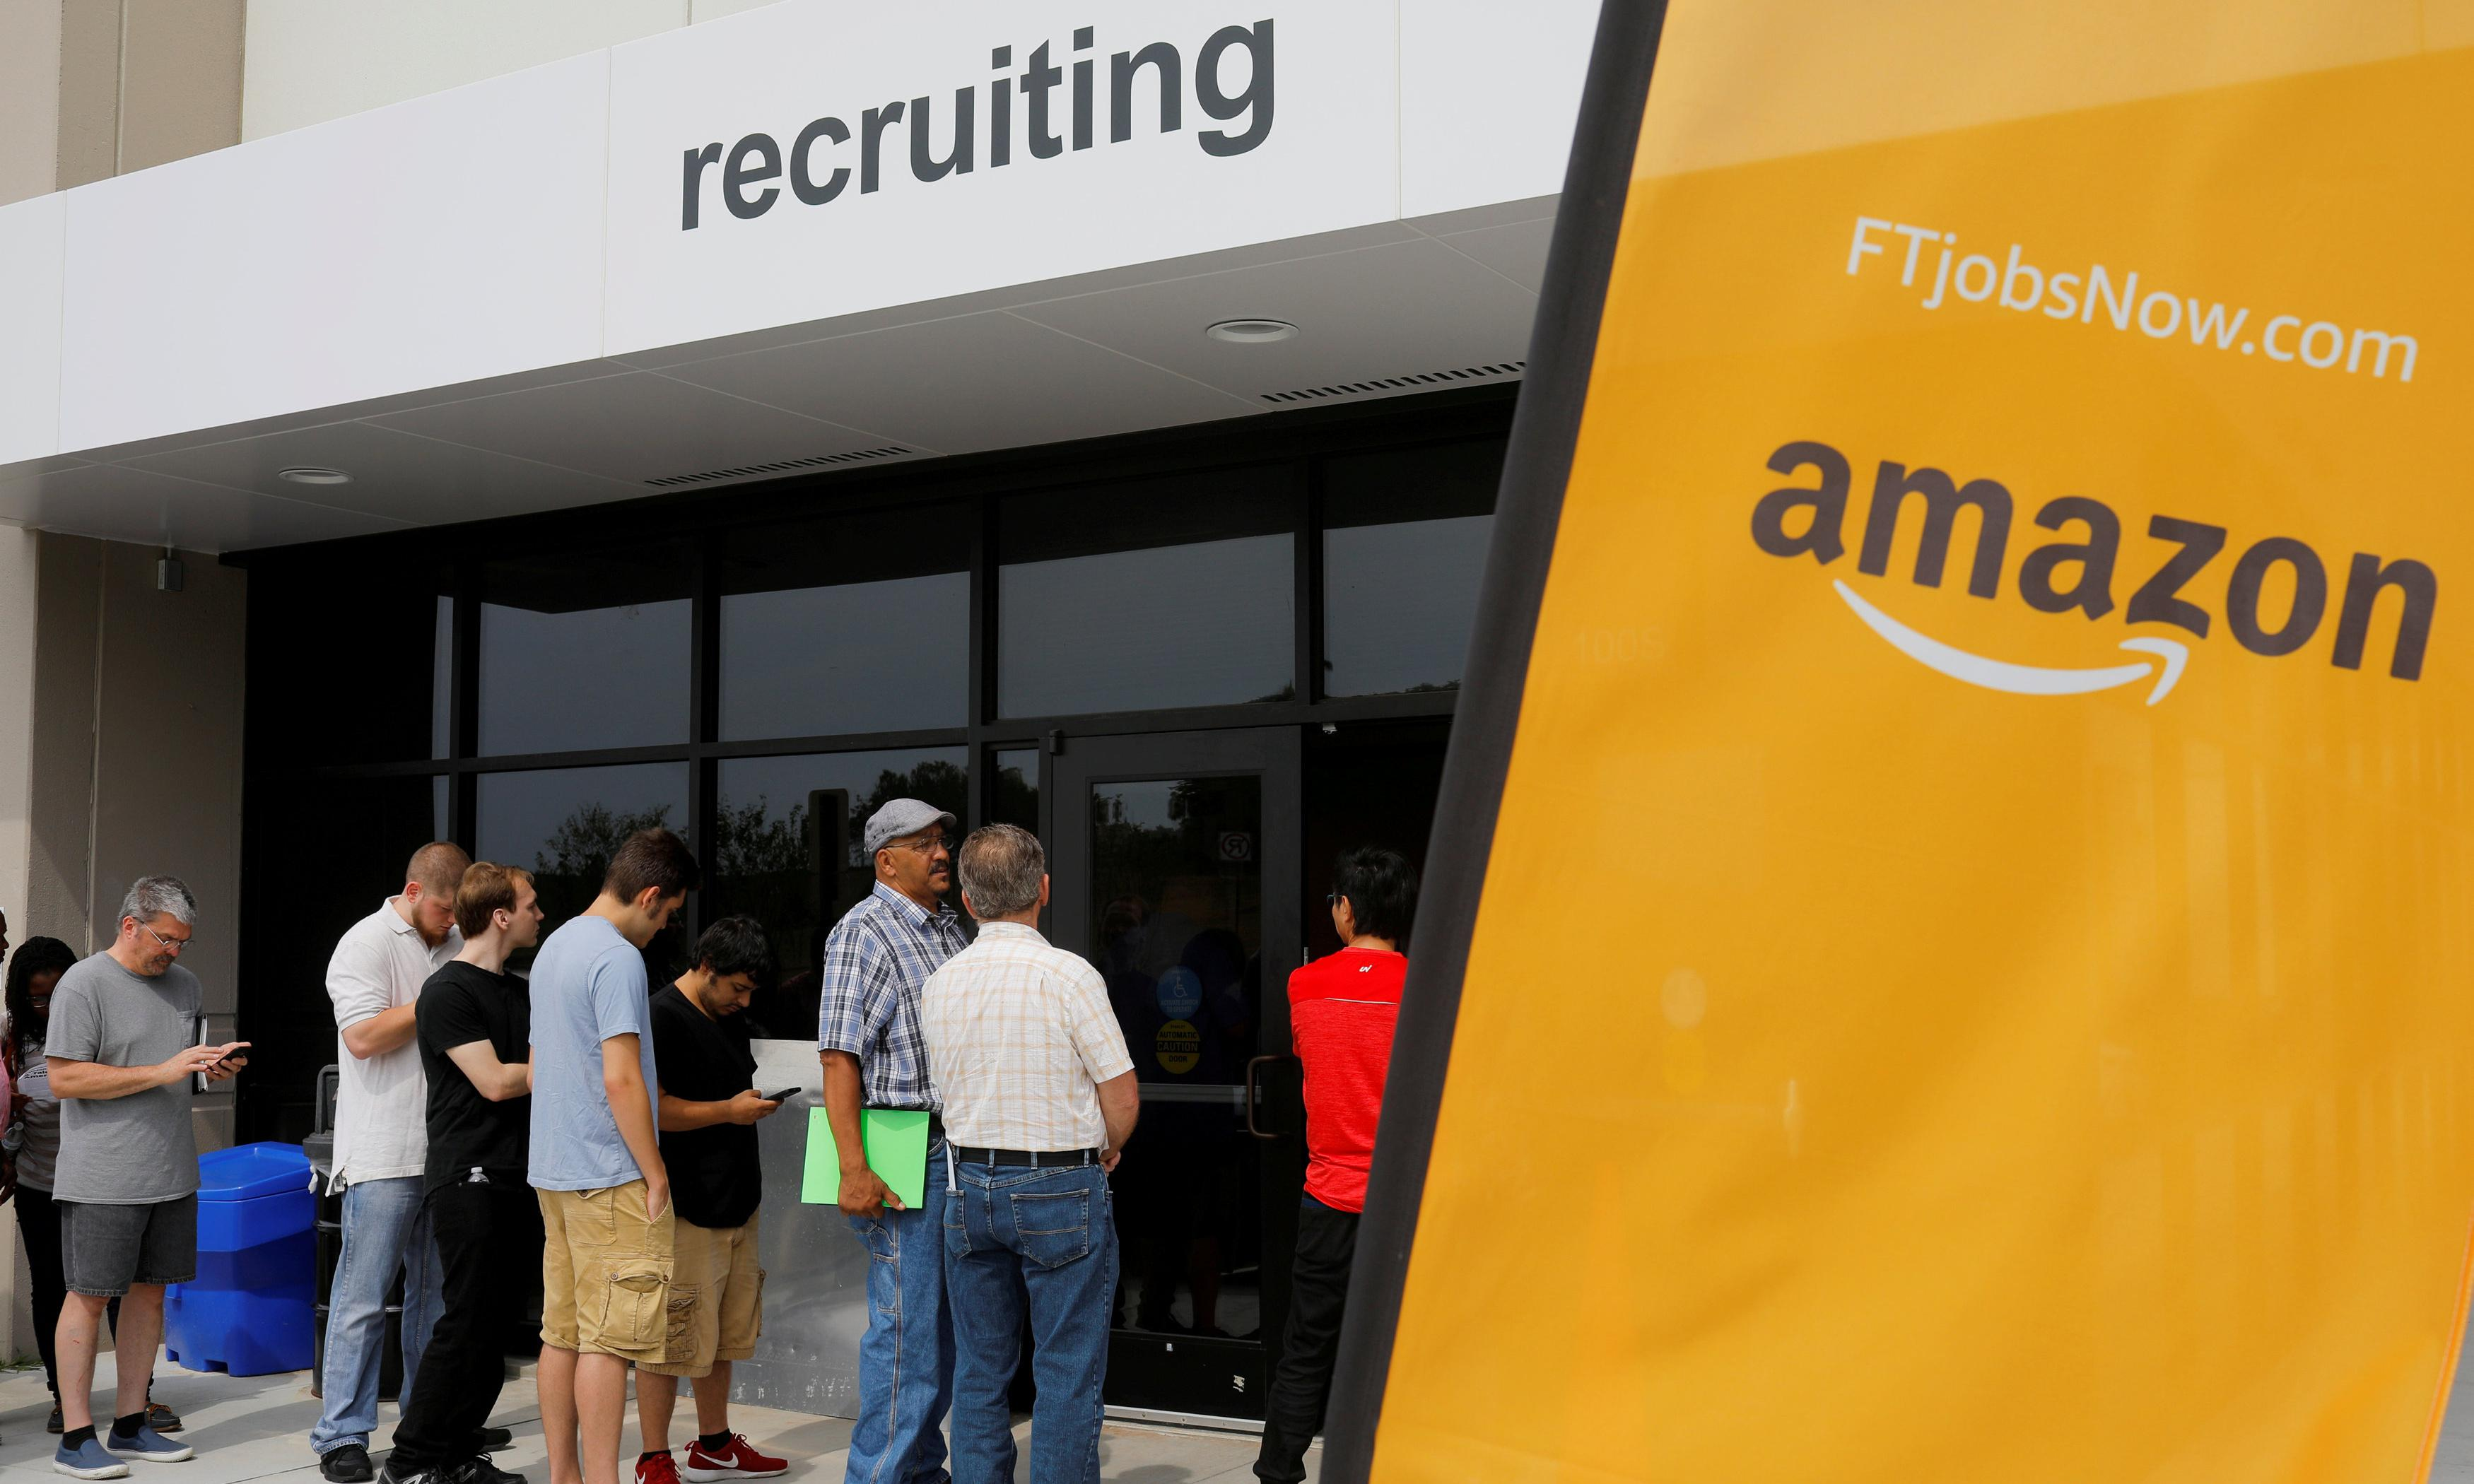 Amazon ditched AI recruiting tool that favored men for technical jobs